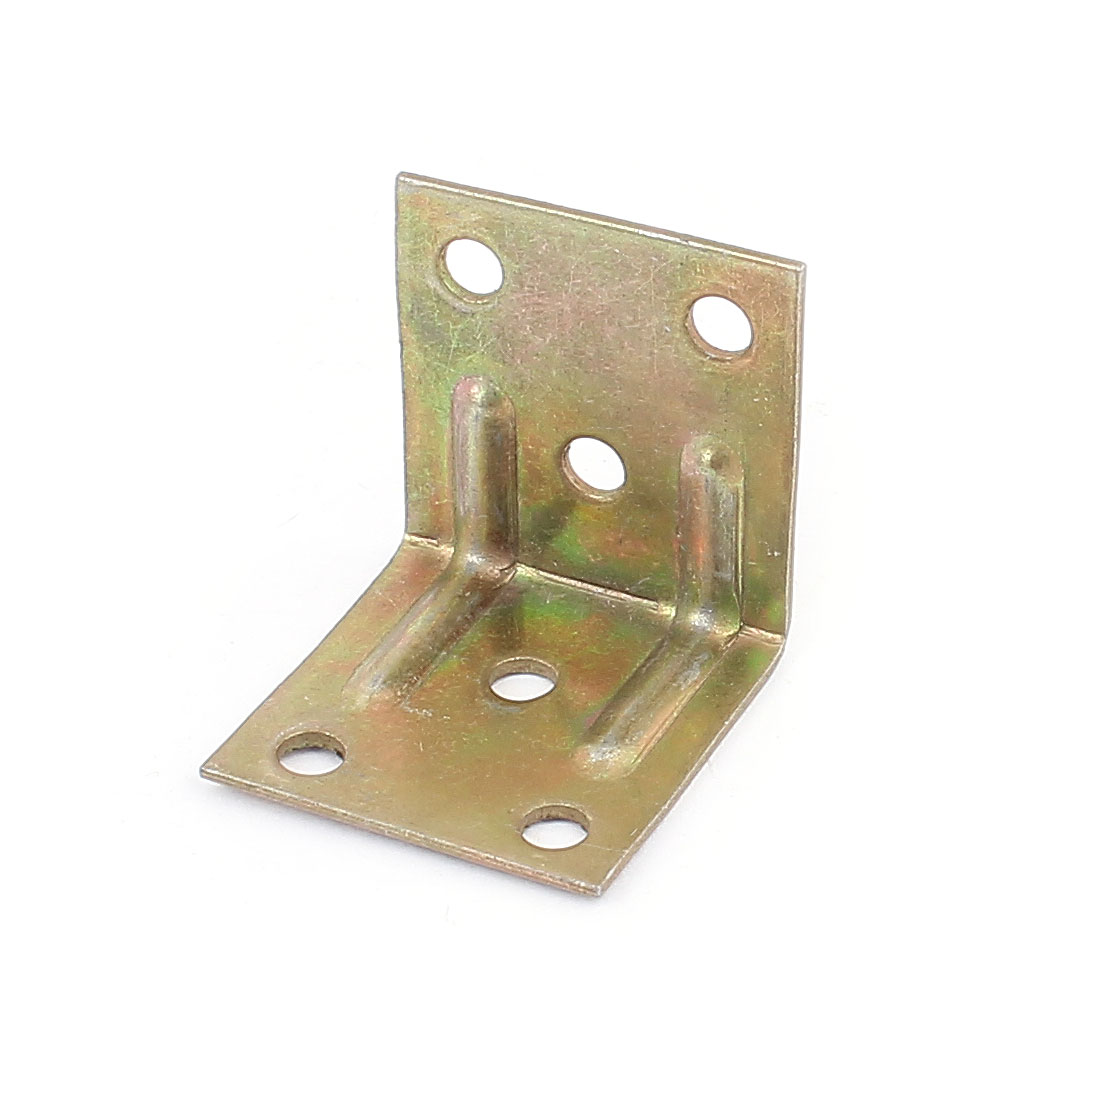 Brass Tone 31x31x29mm 90 Degree Metal Right Angle Bracket Shelf Support